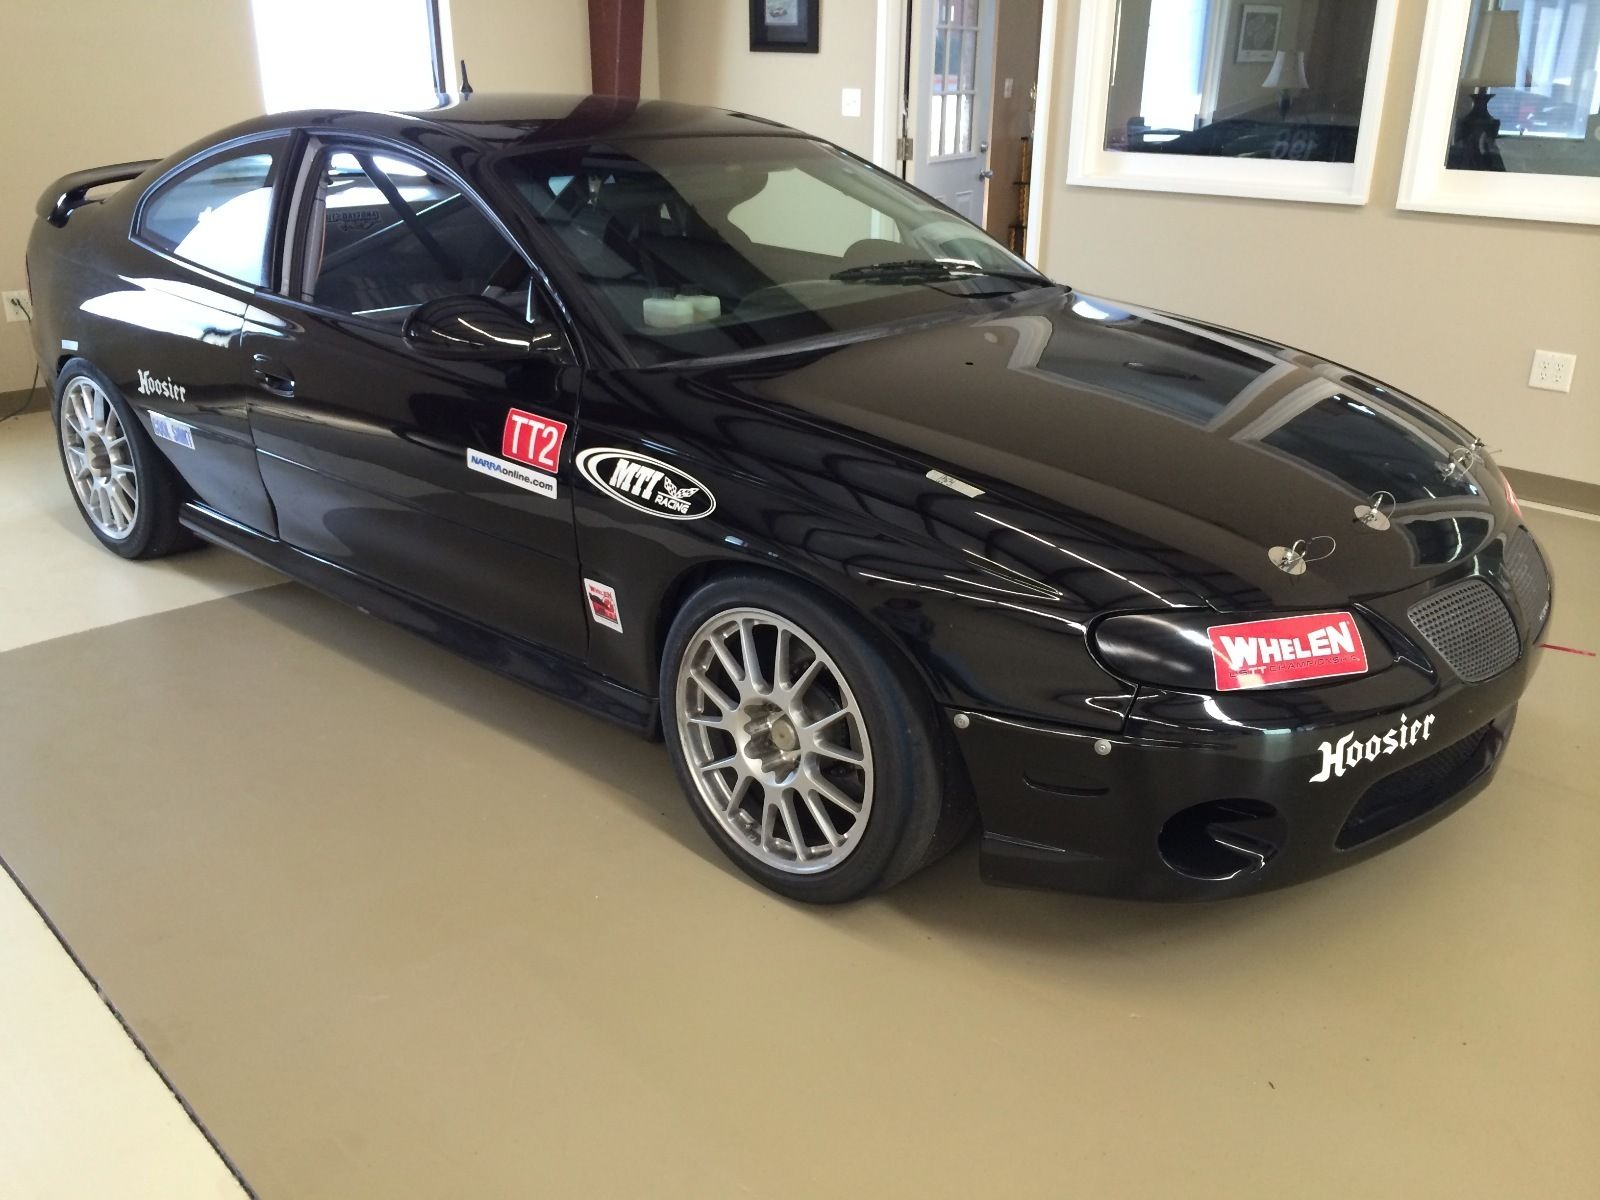 2005 Pontiac Gto Pro Built Grand Am Koni Challenge Car For Sale